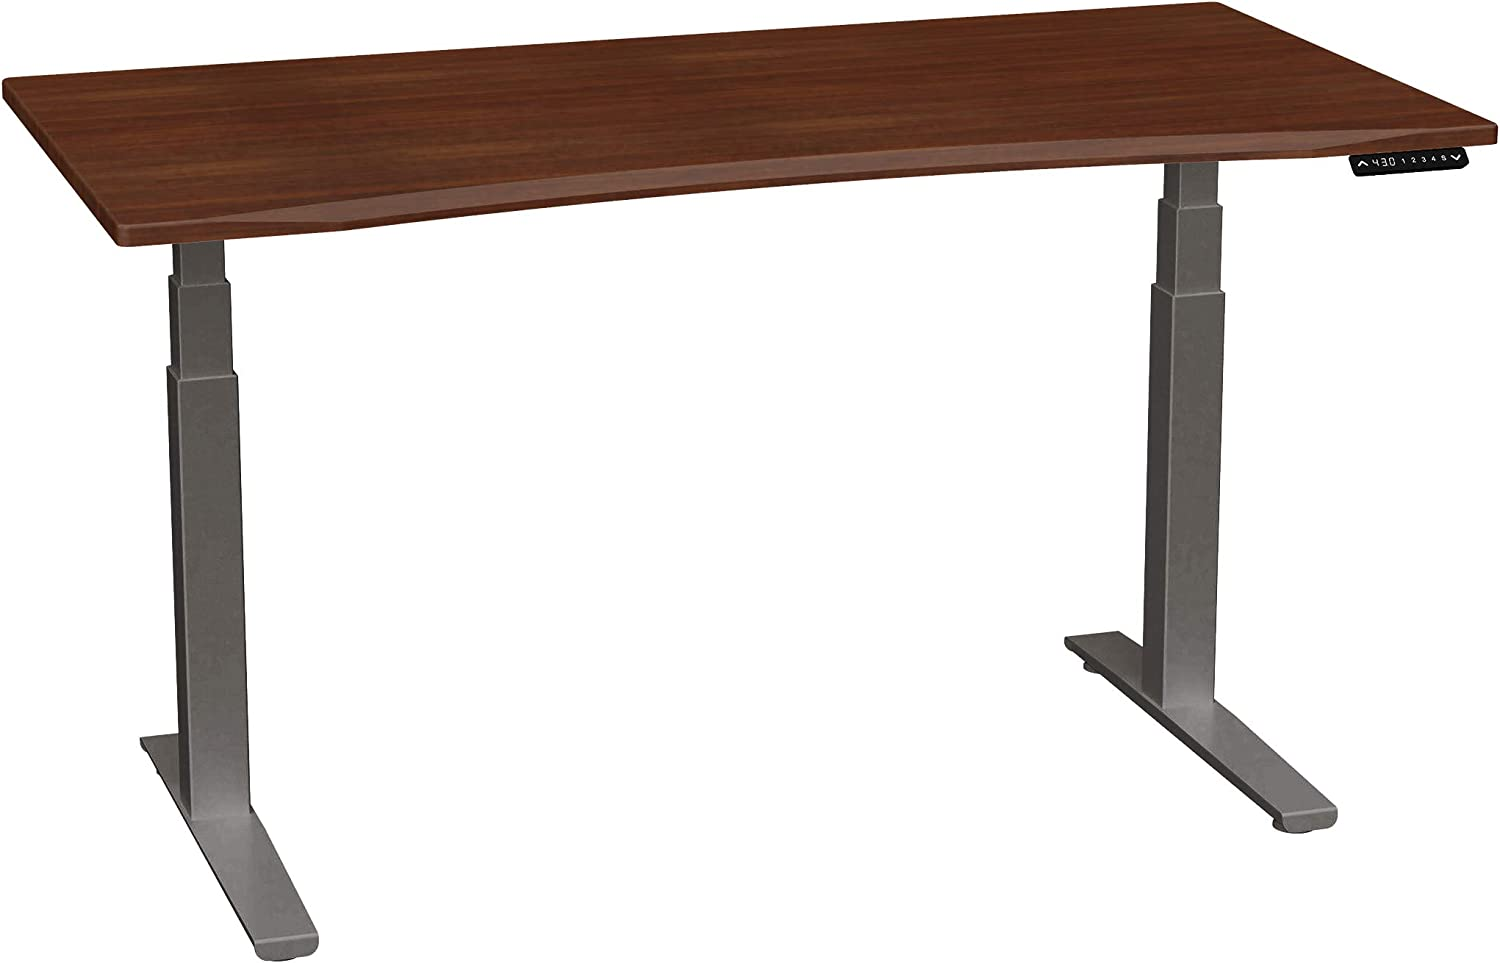 SmartMoves by Howard Miller Dual Motor Electric Adjustable Height Desk with Curved Desktop (Medium Cherry Desktop/Charcoal Base, 60 in Width)